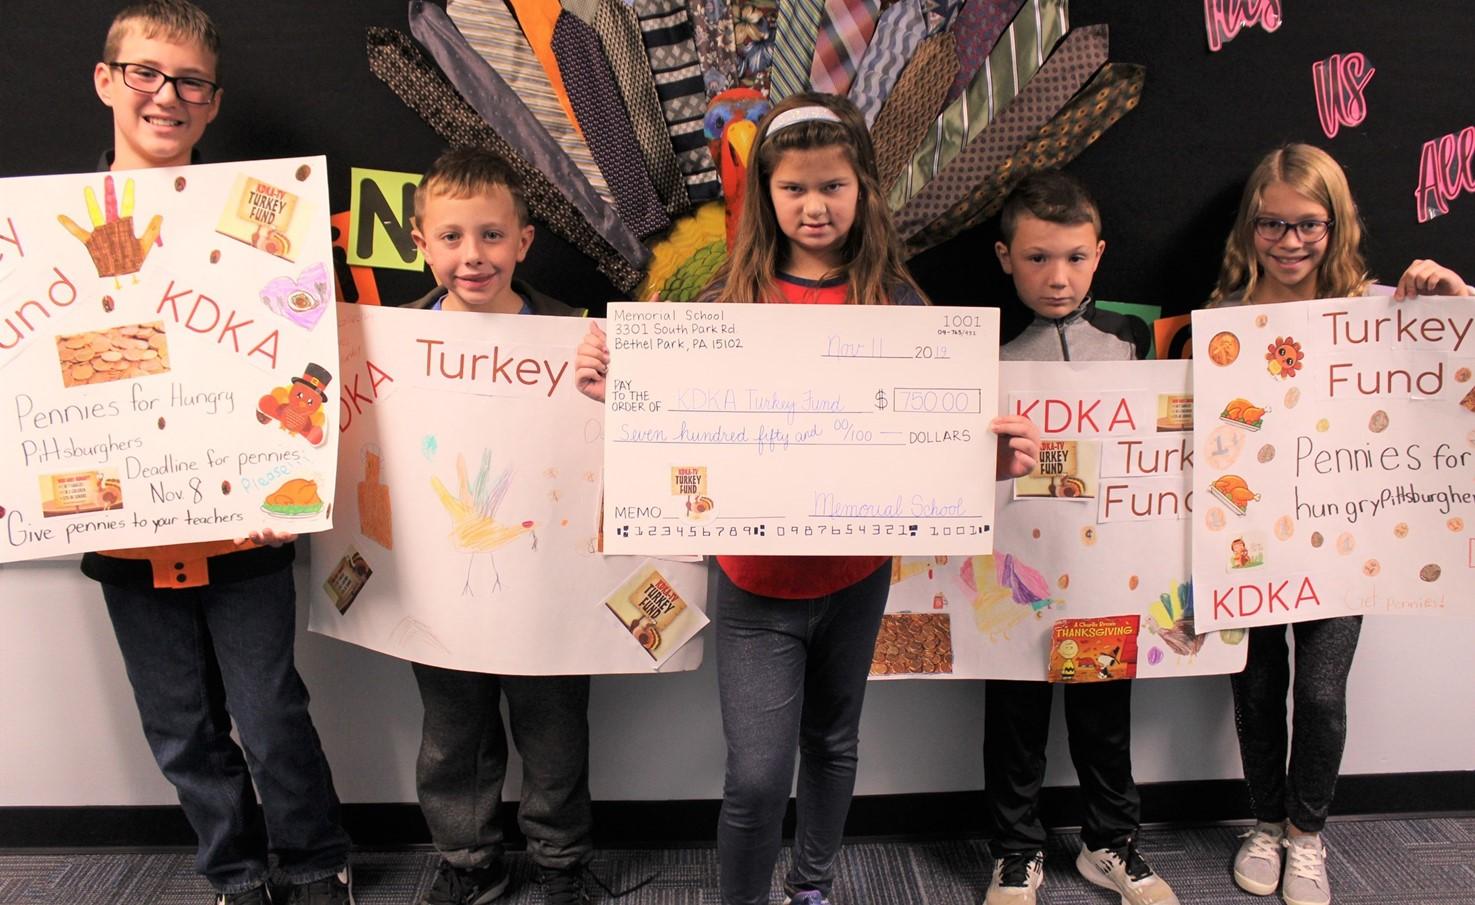 Five students holding a large check and posters